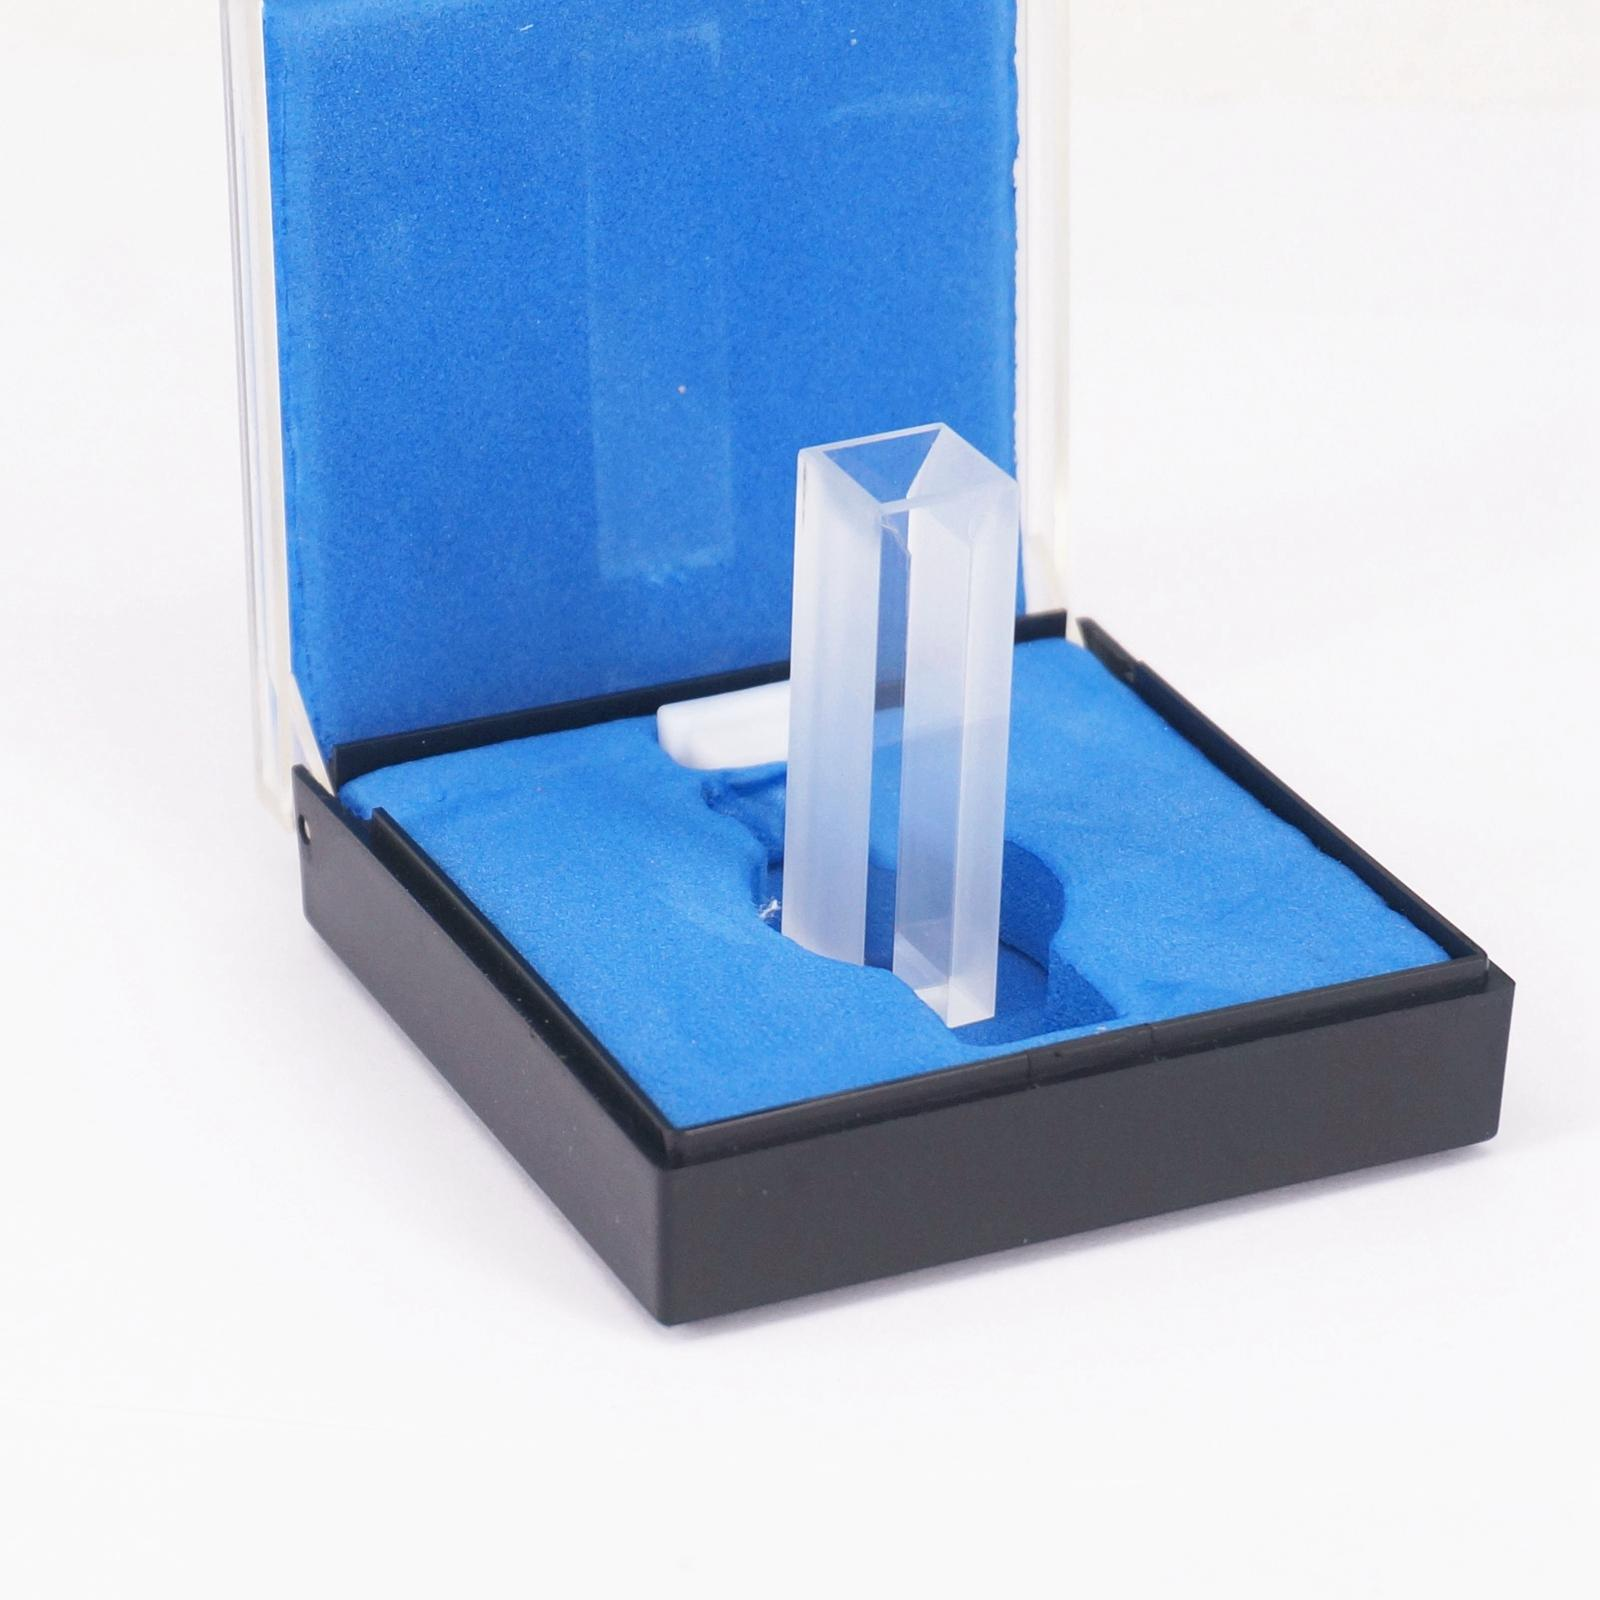 1400ul 10mm Path Length Micro JGS1 Quartz Cuvette With Telfon Lid ...